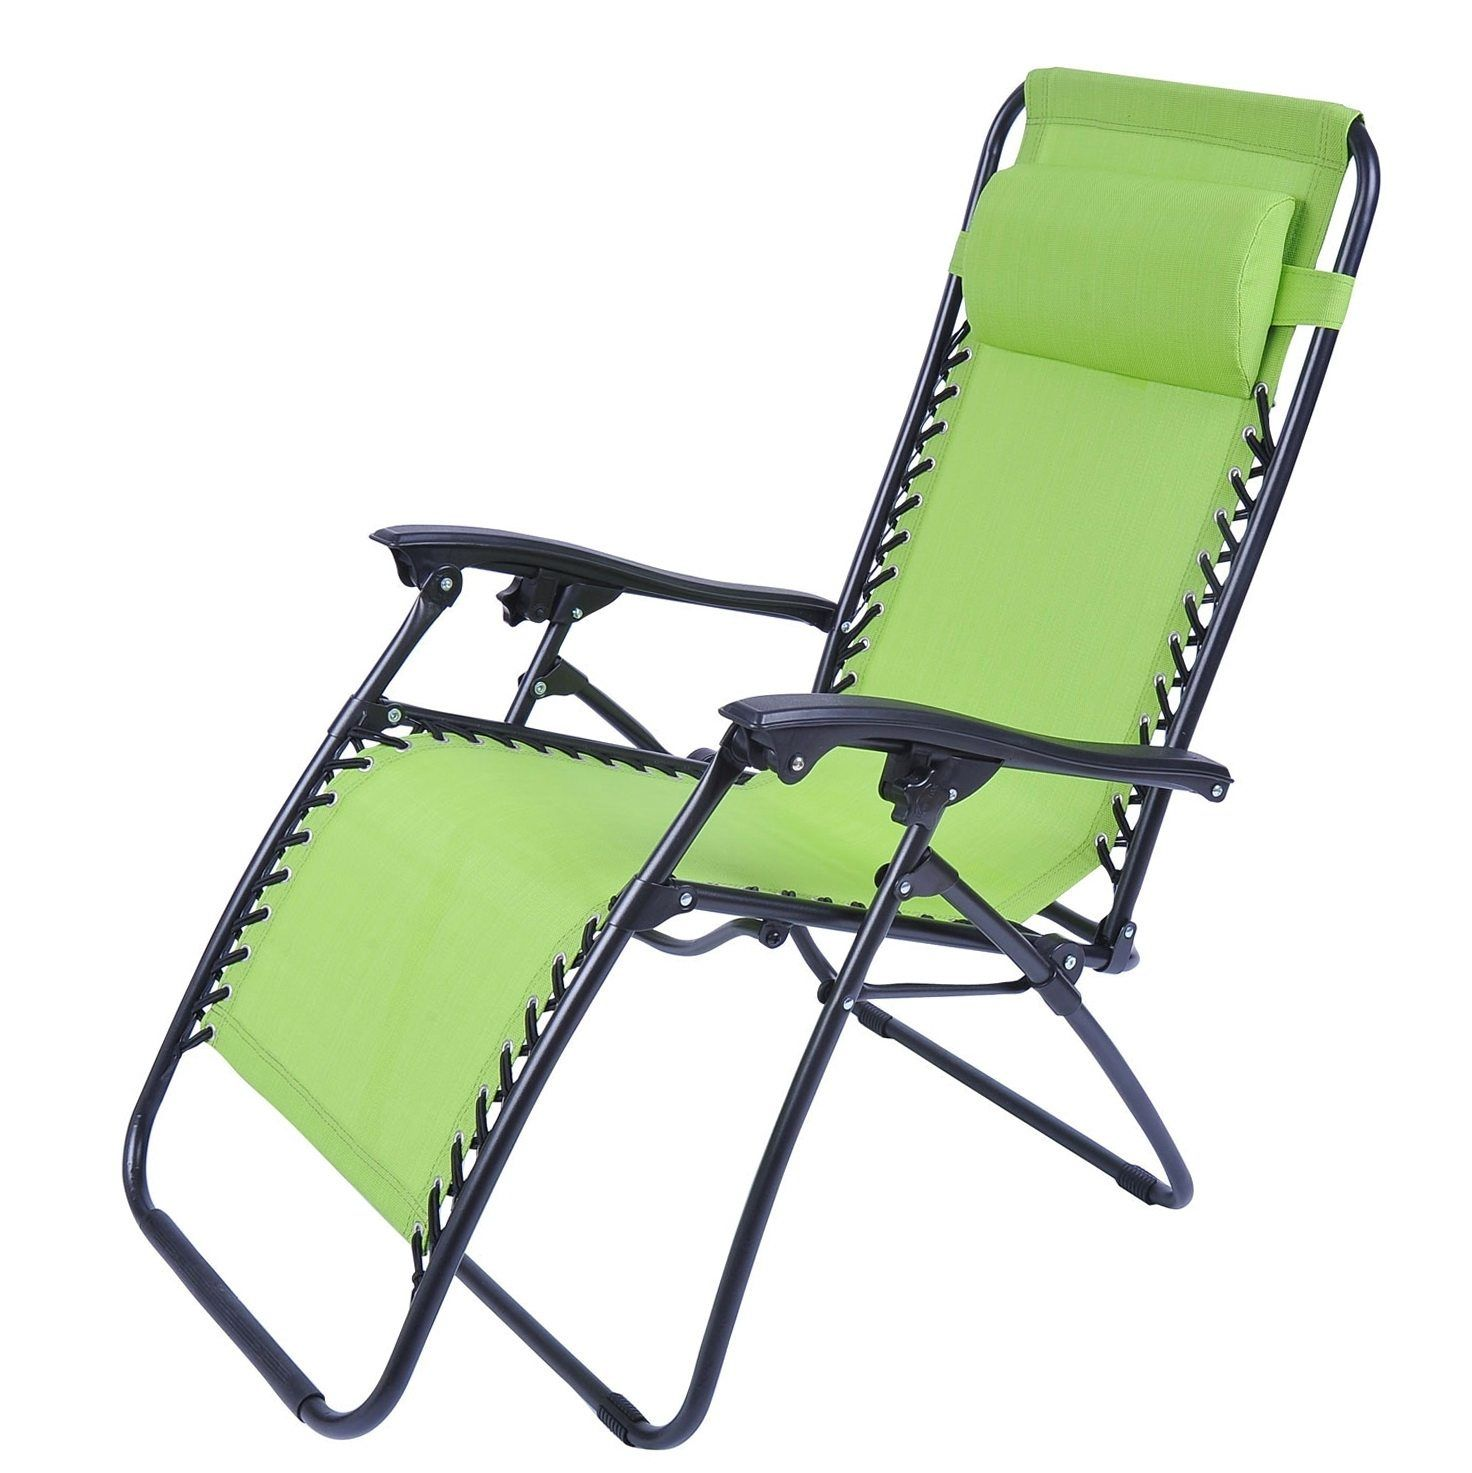 goods plastic lounge patio lifetm coronado tulum folding smsender rocking mainstays co outdoor sonoma chairs chair chaise for